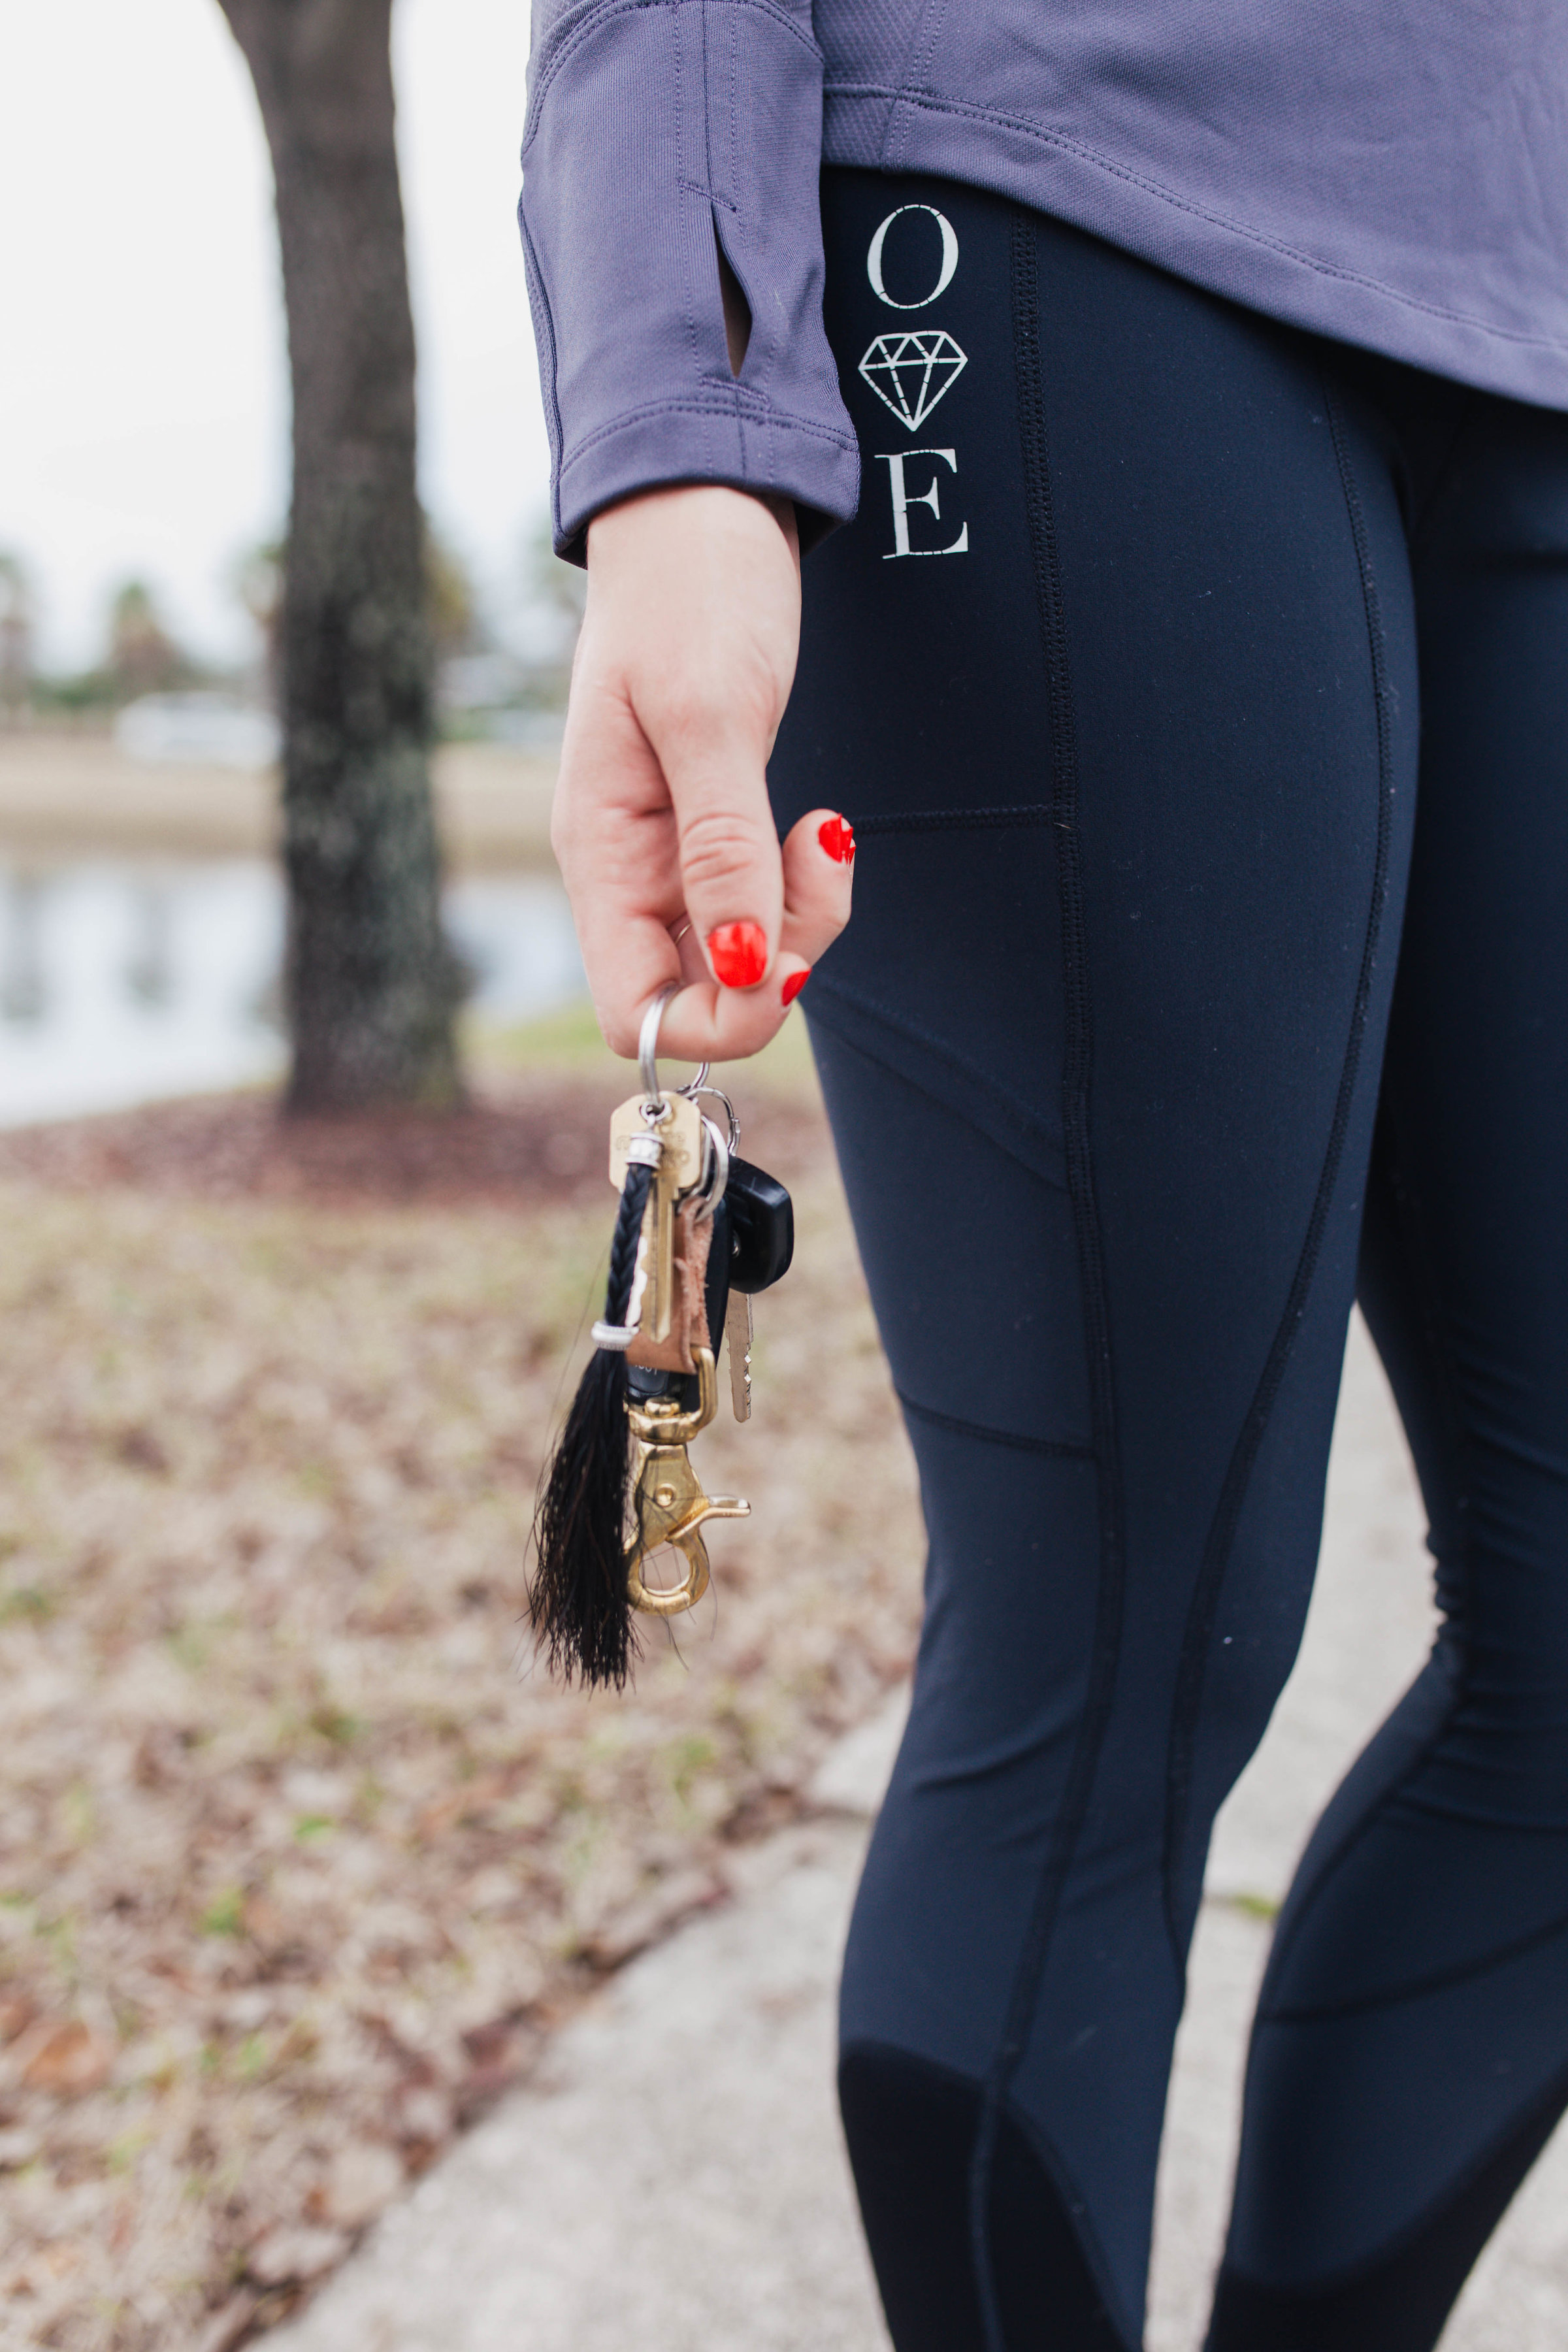 I am sporting my Opal Equestrian black base layer leggings with this top, along with my everyday Details Horse Hair Jewelry key chain and handmade Anney Life Designs leather key chain.